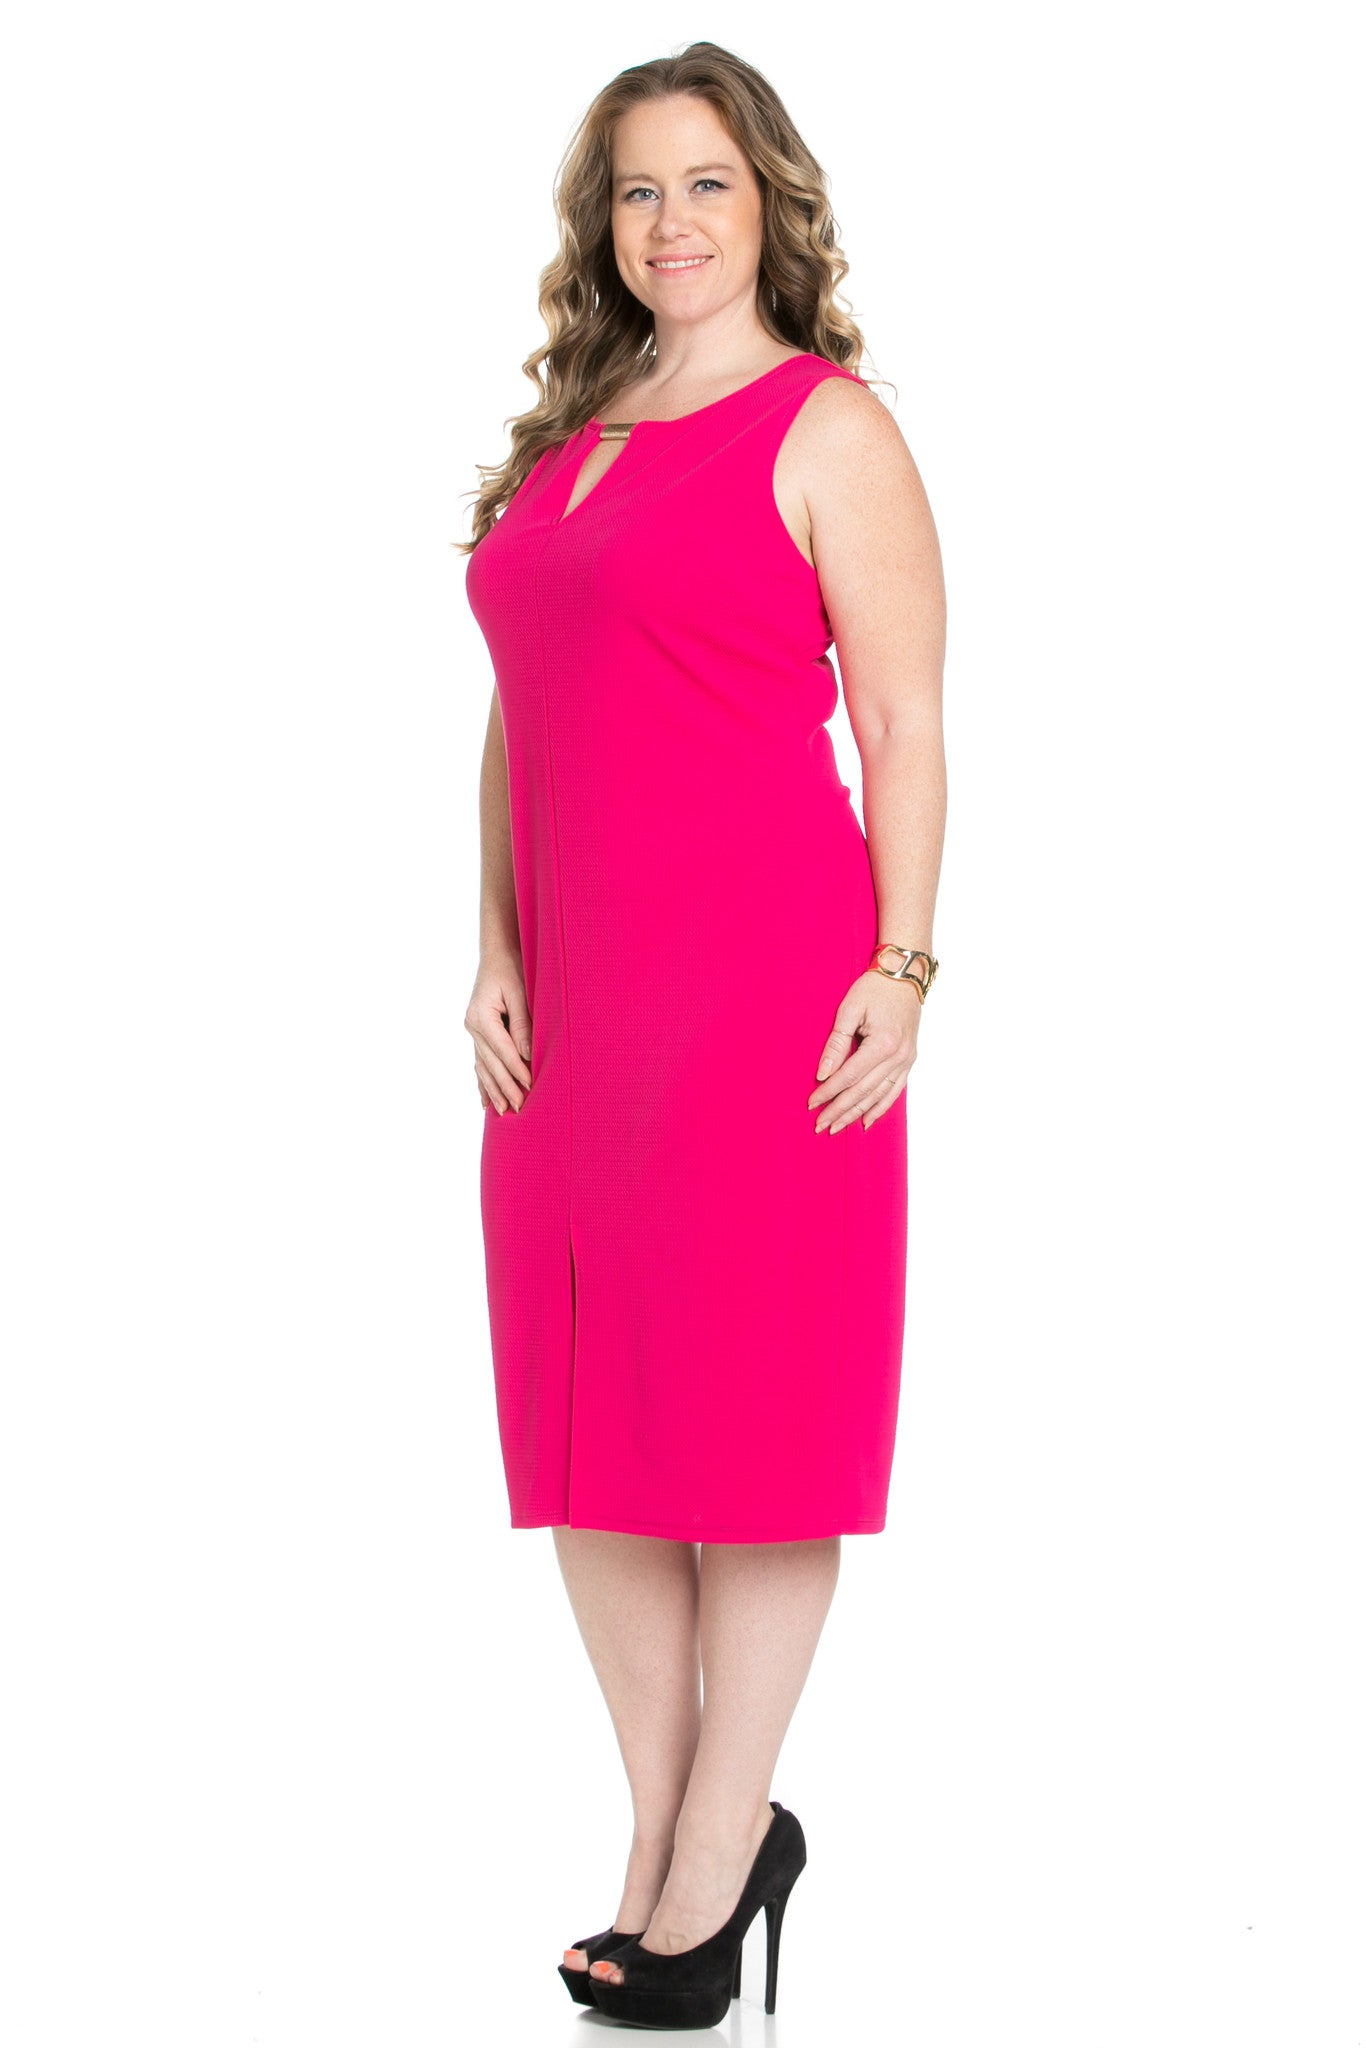 Fuschia Modest a Bit with Bare Shoulders Dress - Dresses - My Yuccie - 3